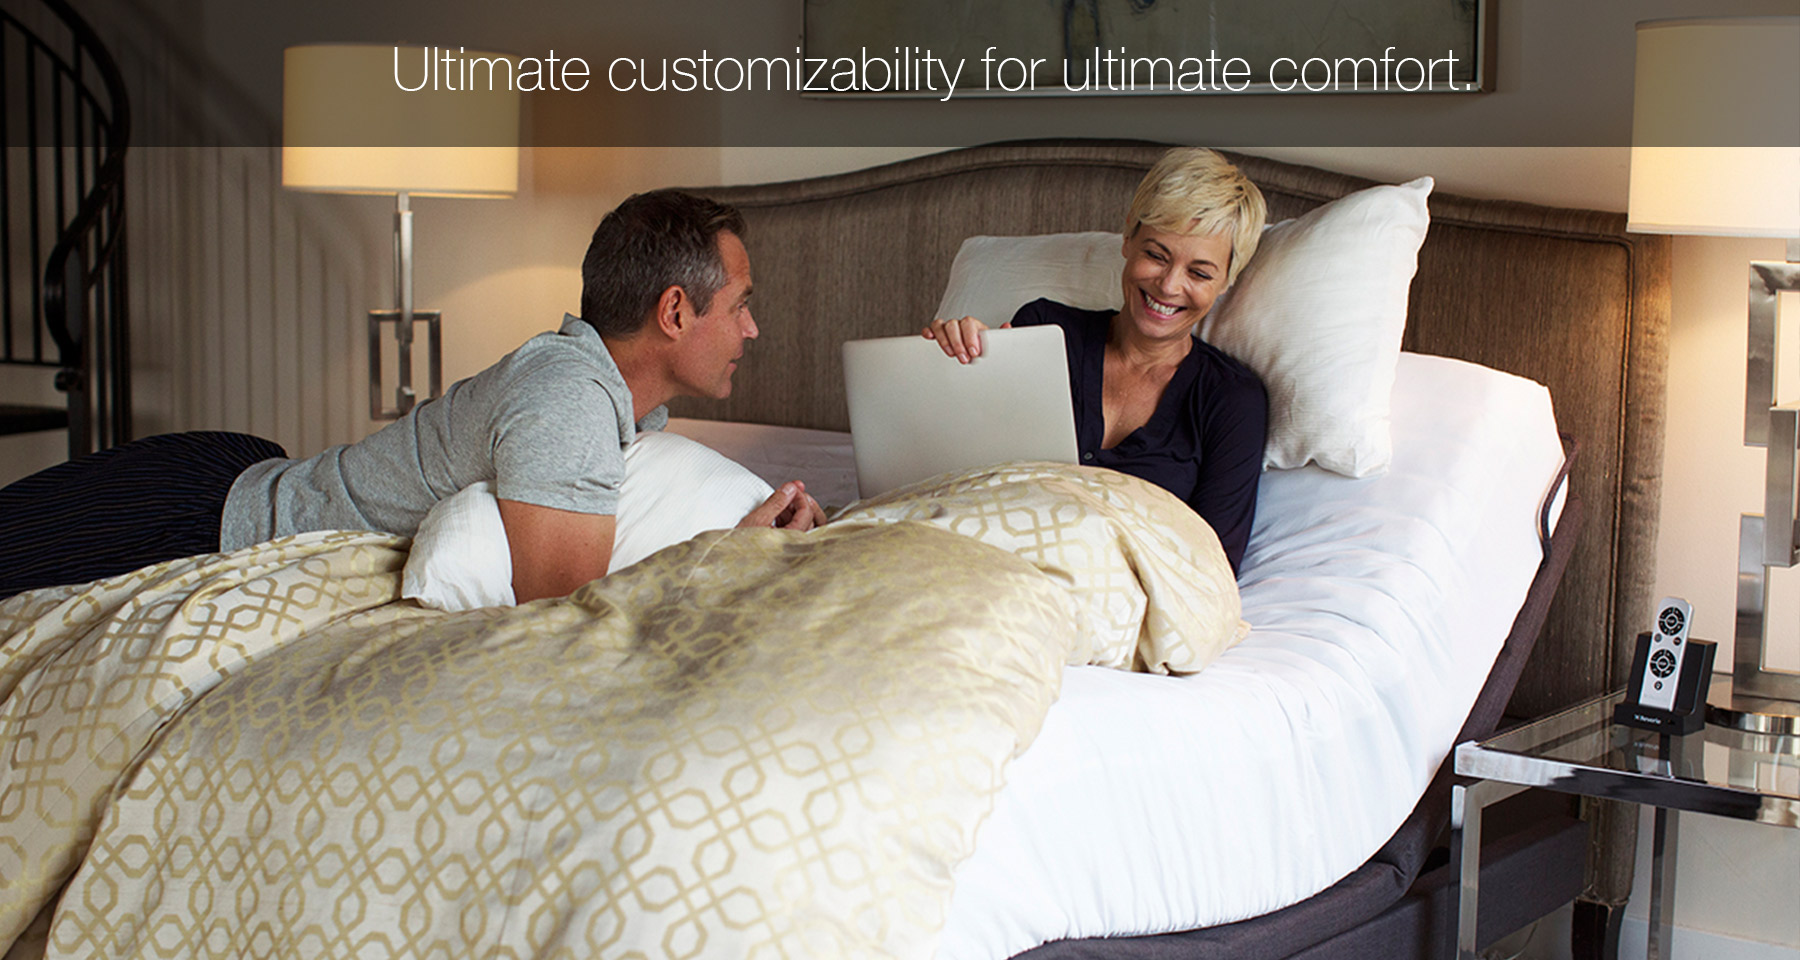 Incroyable Los Angeles CA Santa Ana Costa Mesa Long Beach Adjustable Beds Electric  Ergo Motion Power Base Motorized Foundation Latex Mattresses